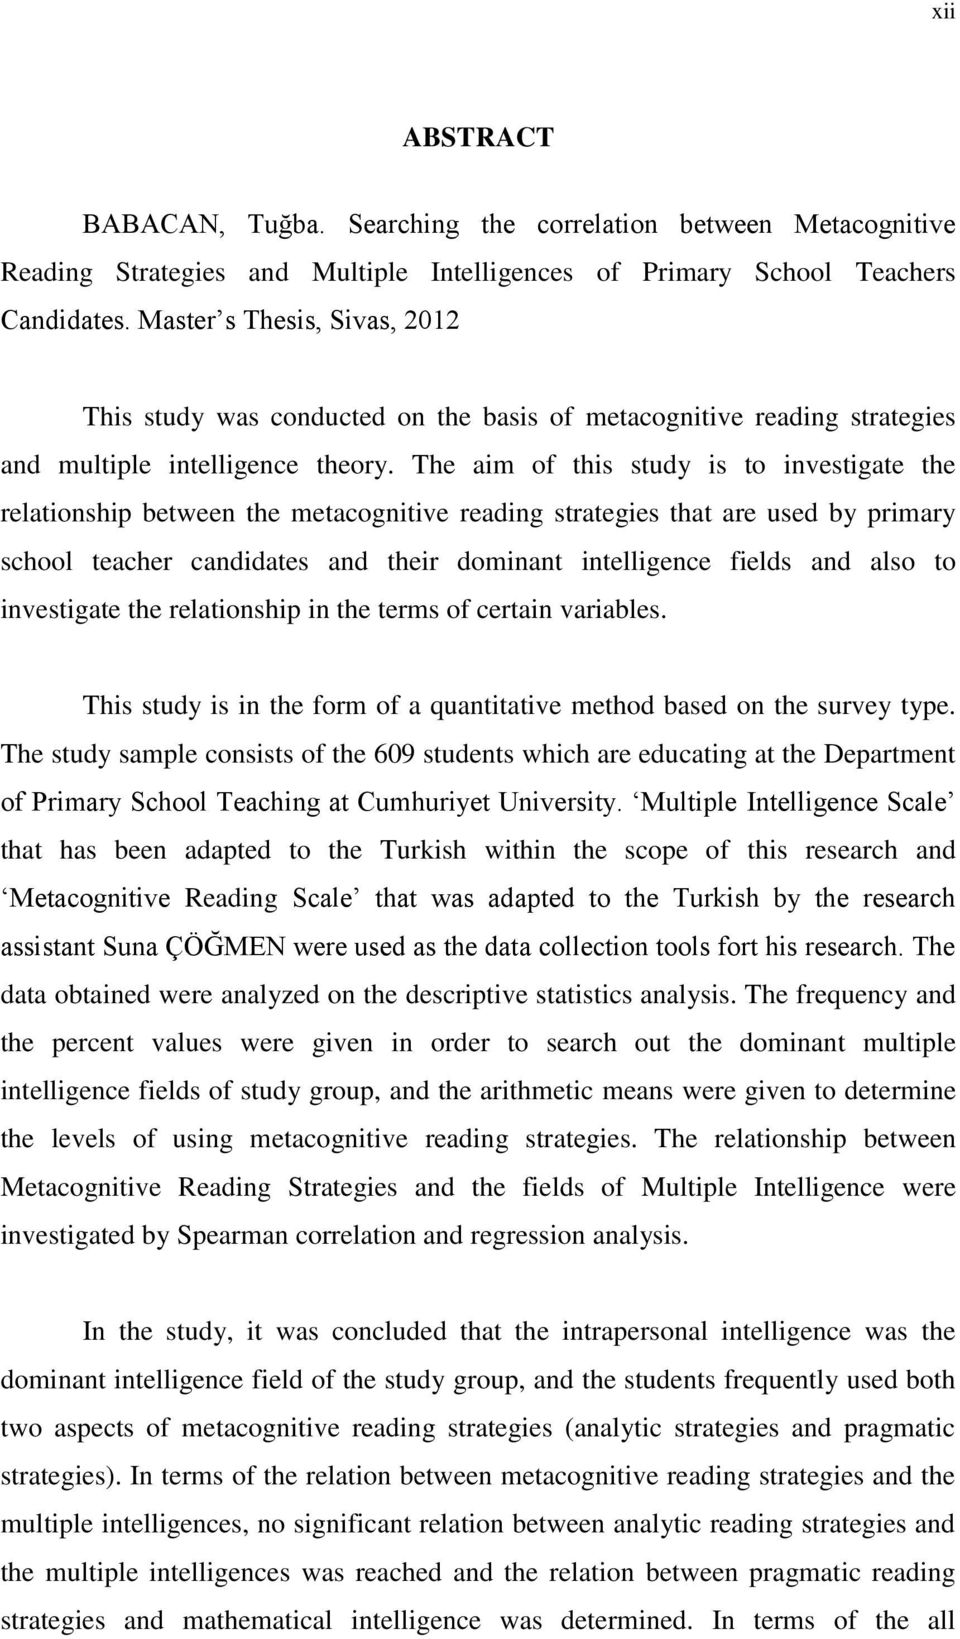 The aim of this study is to investigate the relationship between the metacognitive reading strategies that are used by primary school teacher candidates and their dominant intelligence fields and